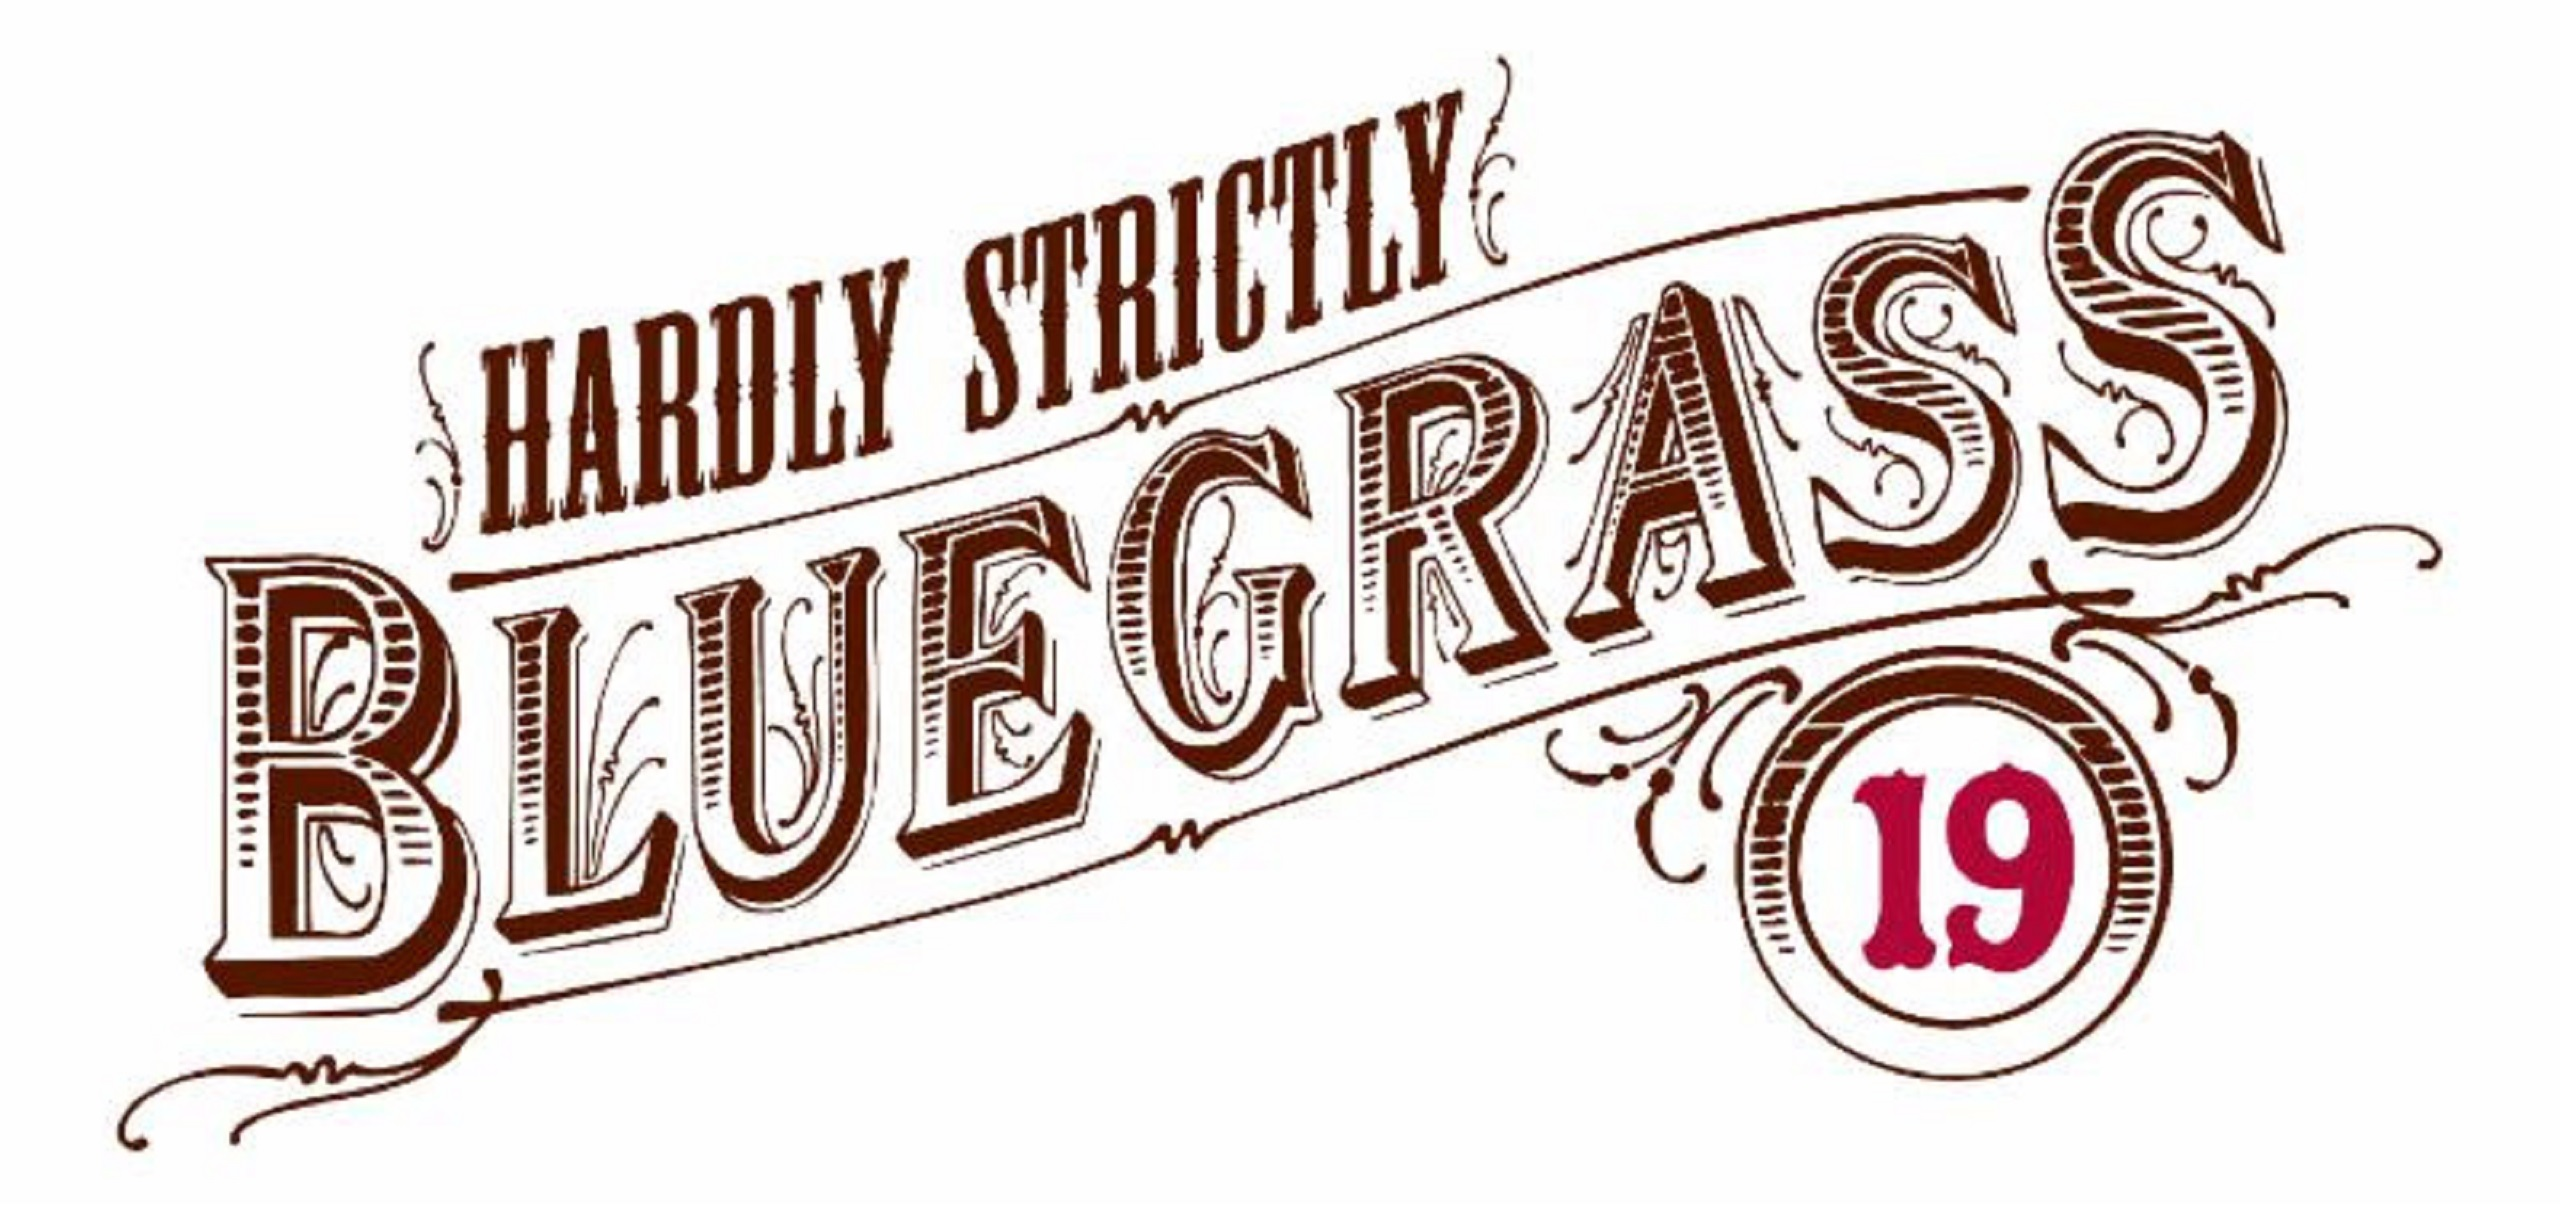 Hardly Strictly Bluegrass Announces Third Round Of Lineup For 2019